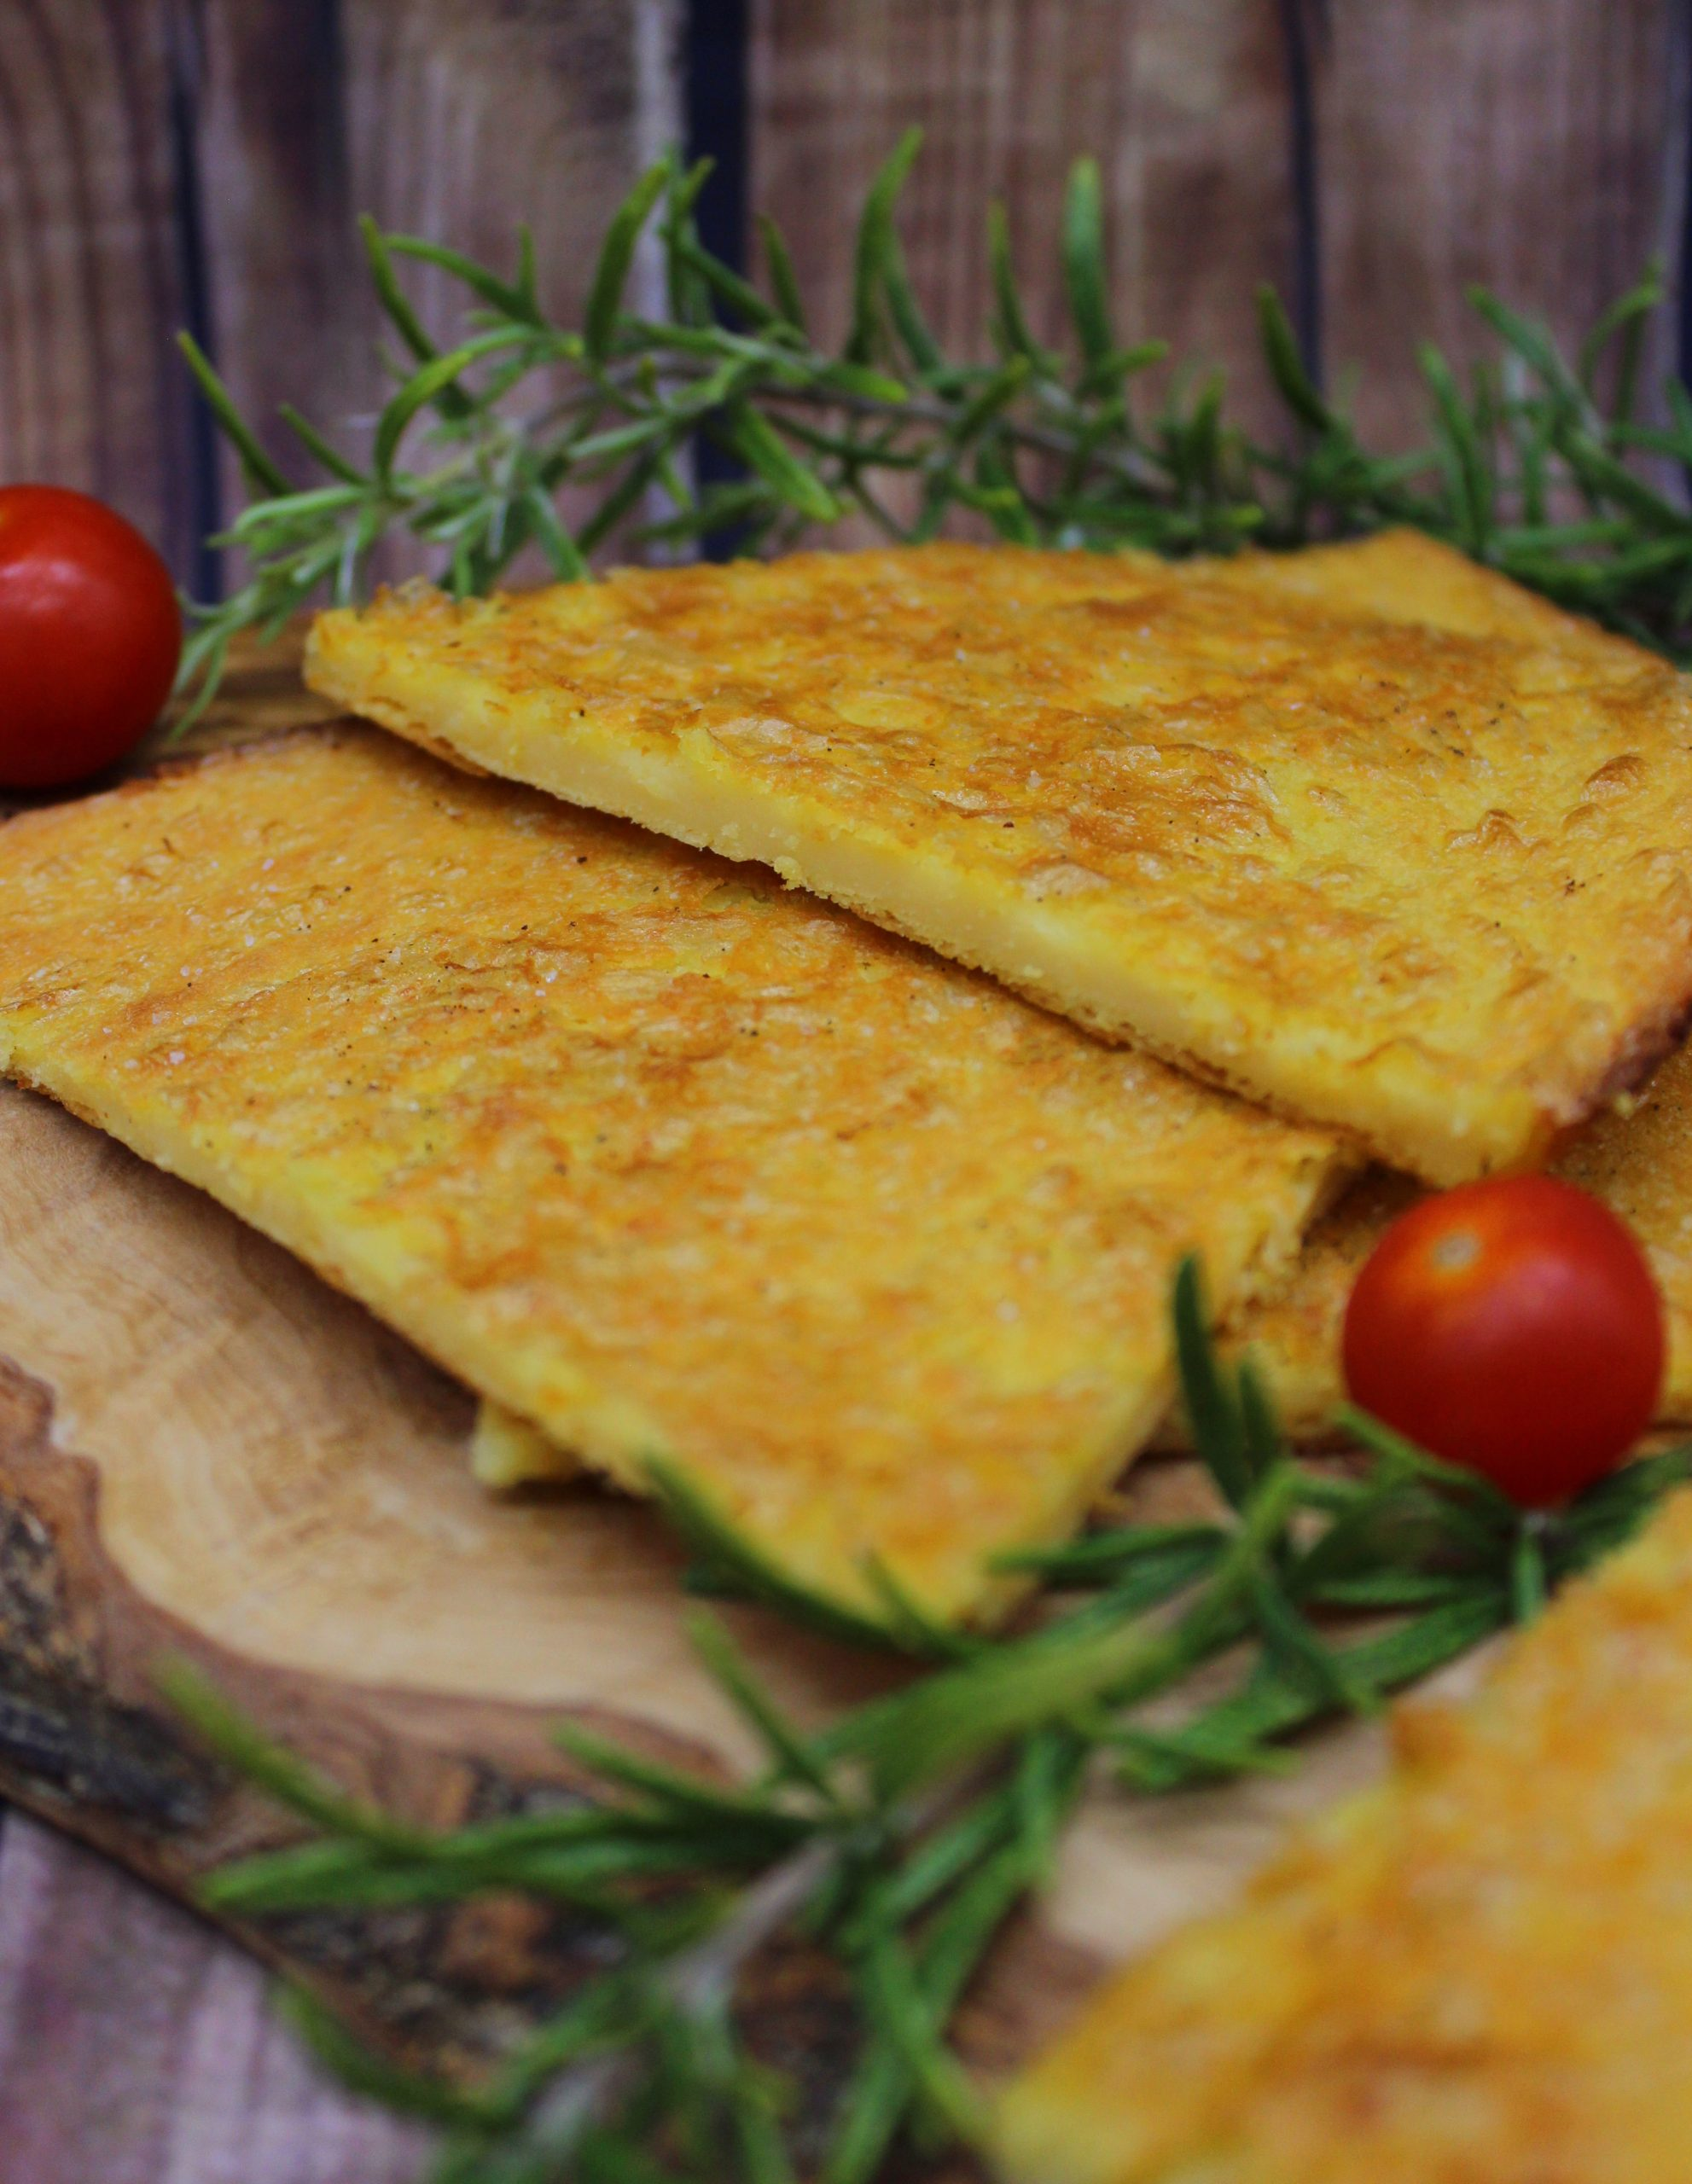 Cecina or traditional Italian chickpea flour flatbread